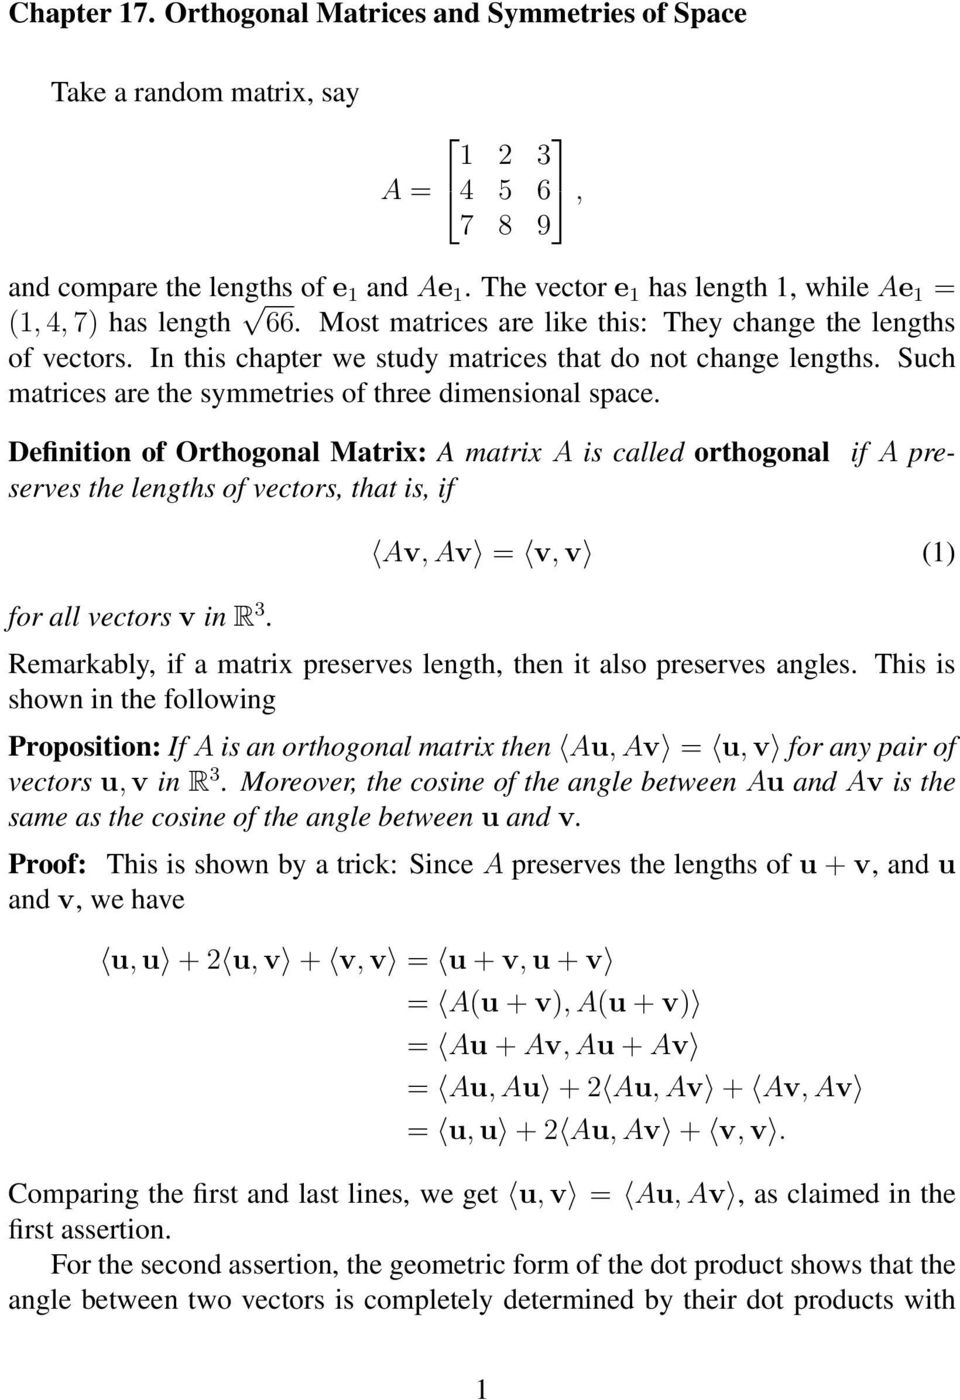 chapter 17 orthogonal matrices and symmetries of space pdf